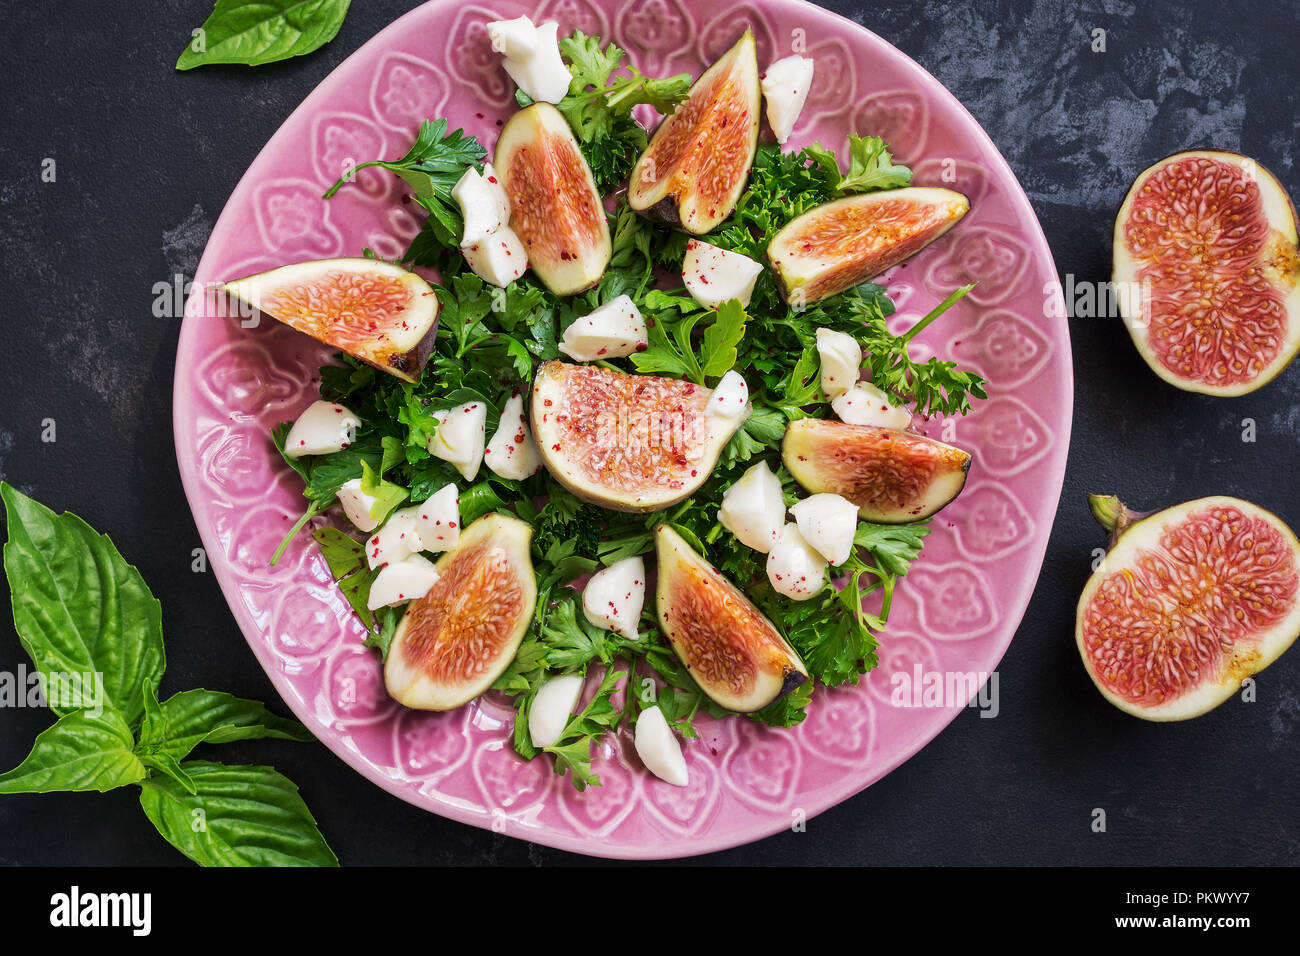 Salad with figs, cheese and greens on a dark concrete background. Dietary healthy food. The view from above, flat lay. Stock Photo